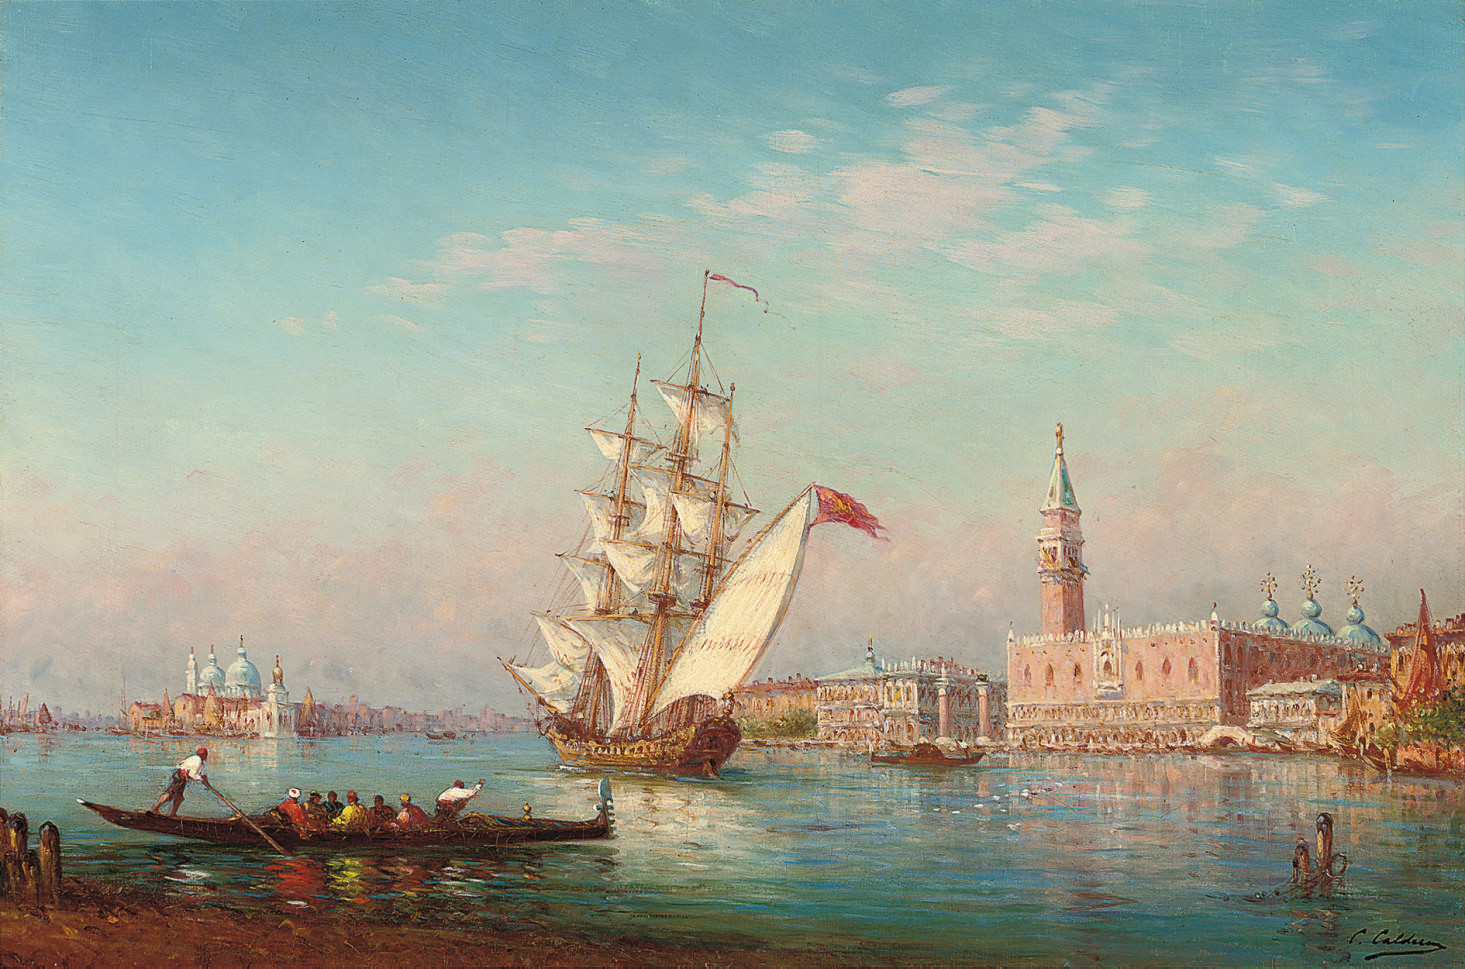 Gondolas and trading vessels before the Doge's Palace, Venice